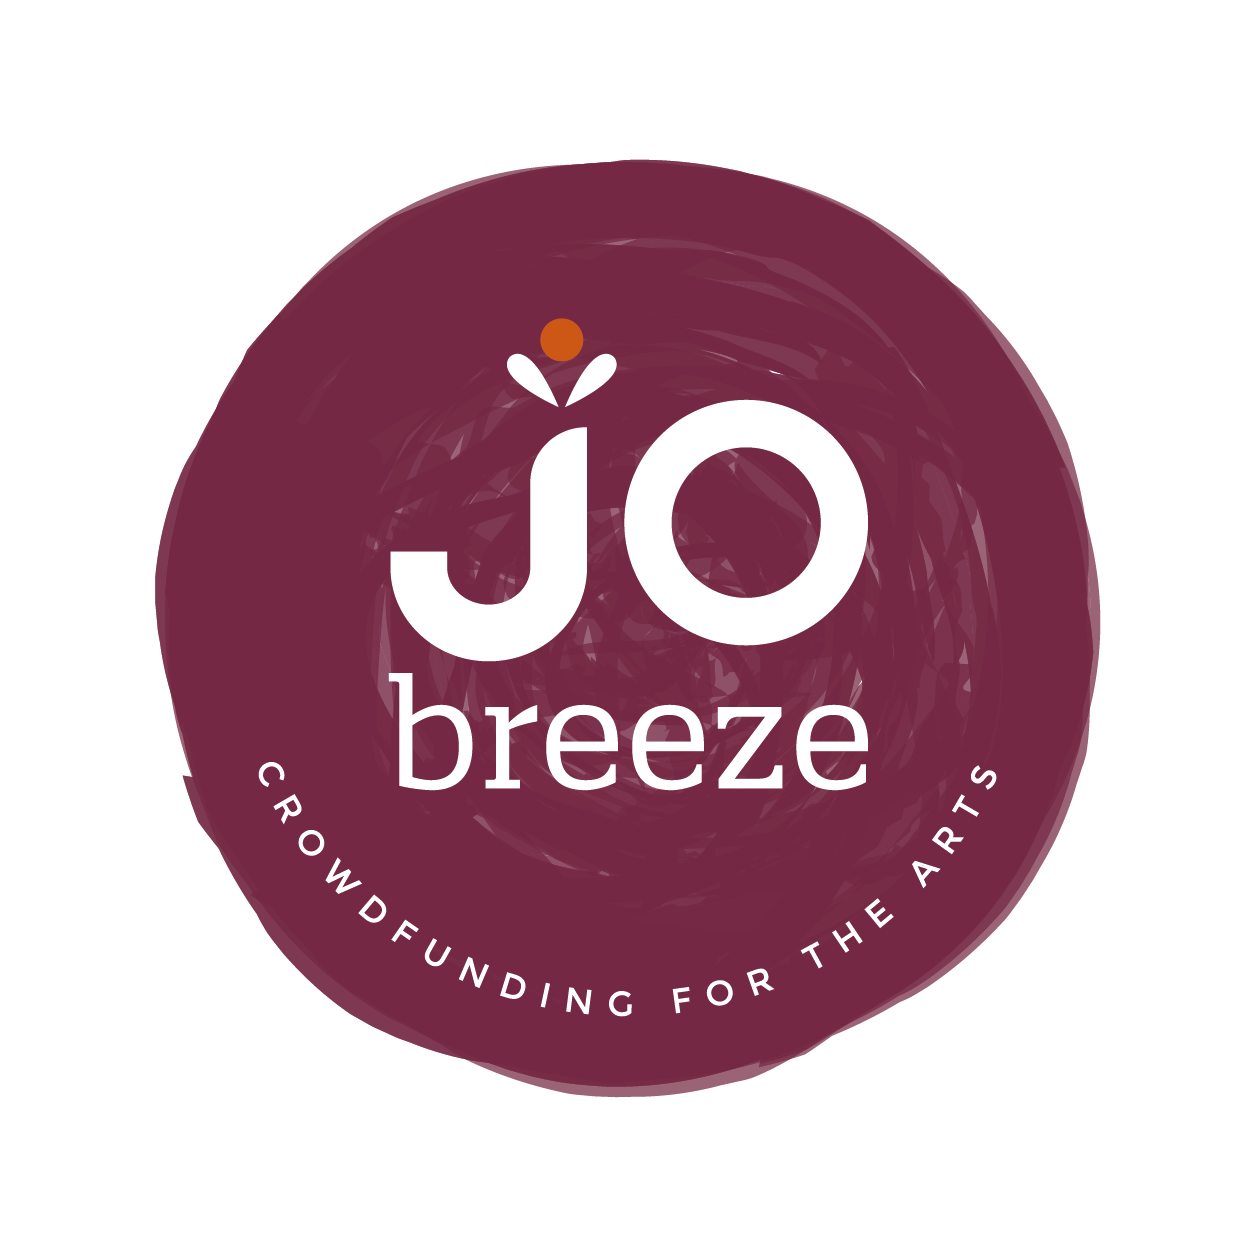 Jo Breeze: Crowdfunding for the arts